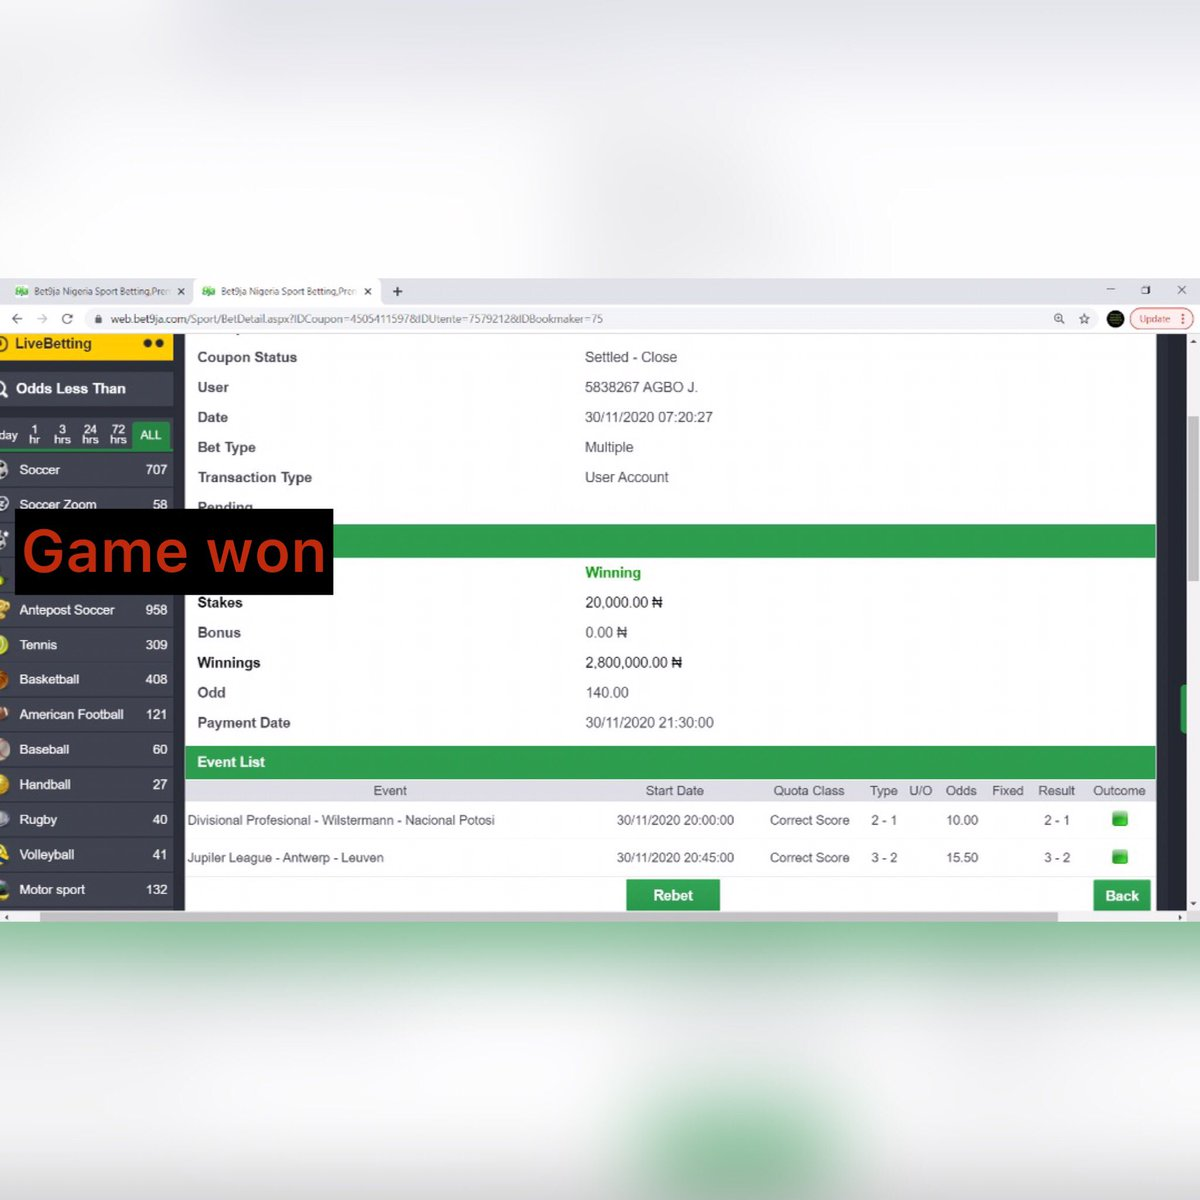 Game won  More successful winning coming  Just inbox whatsapp or call admin to participate  +2348028068884 #bet9ja #bet365 #betfair #bet #soccer #soccer24 #williamhill #bwin #bovada # #june  #Happynew month #Football https://t.co/Yk3NVTH5MO